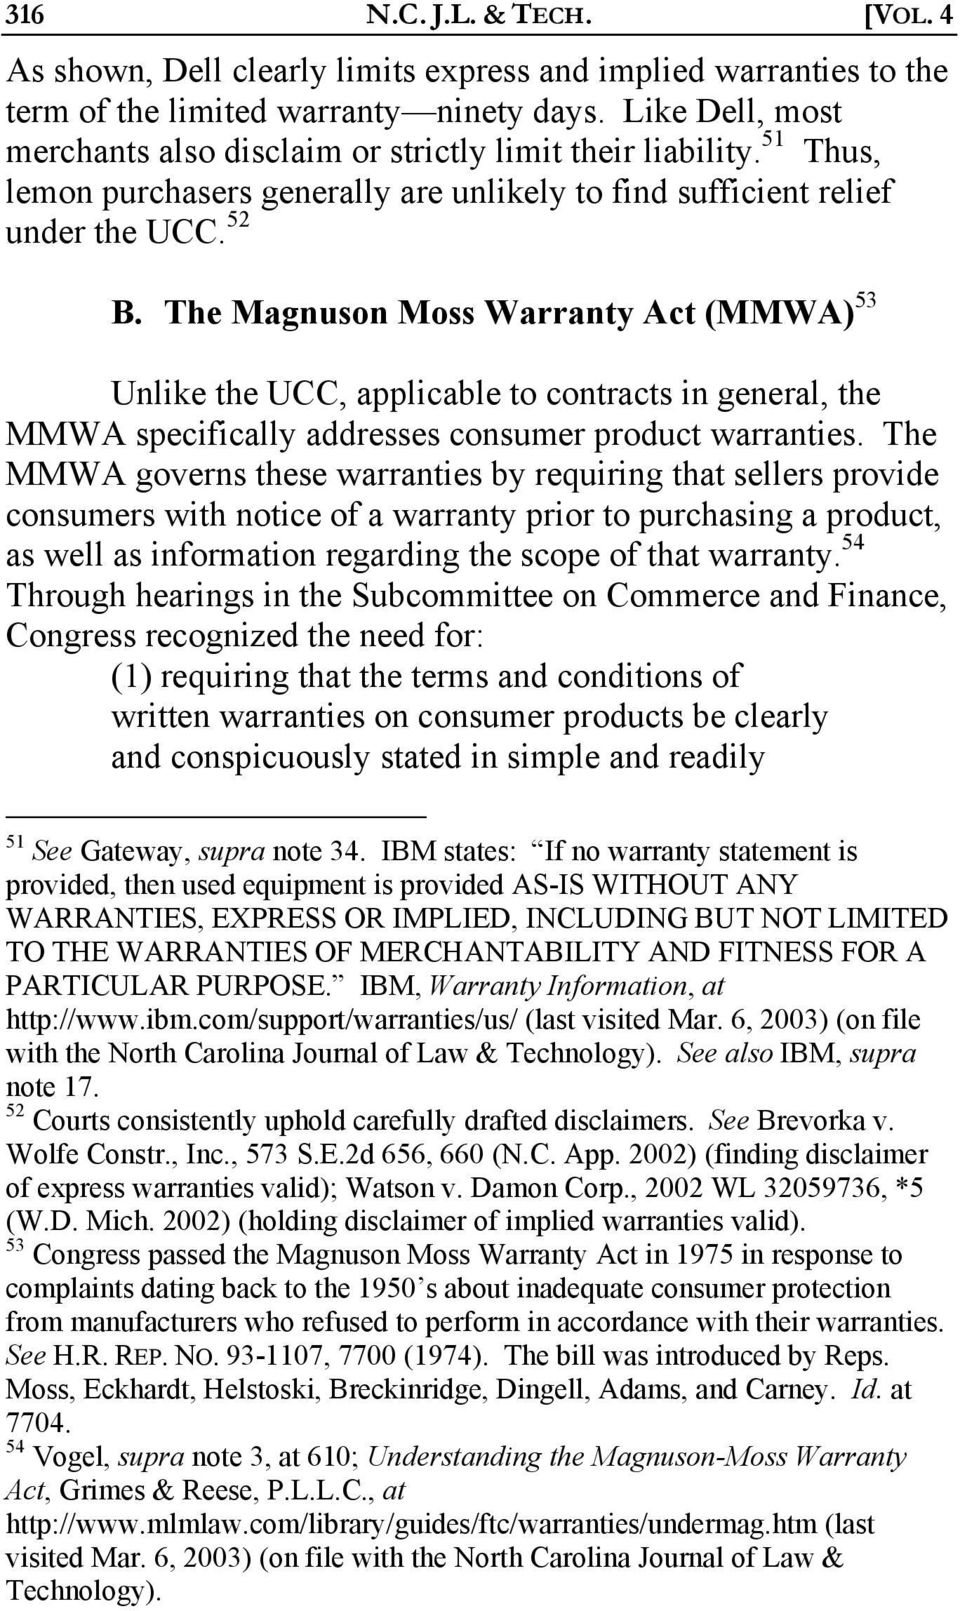 The Magnuson Moss Warranty Act (MMWA) 53 Unlike the UCC, applicable to contracts in general, the MMWA specifically addresses consumer product warranties.